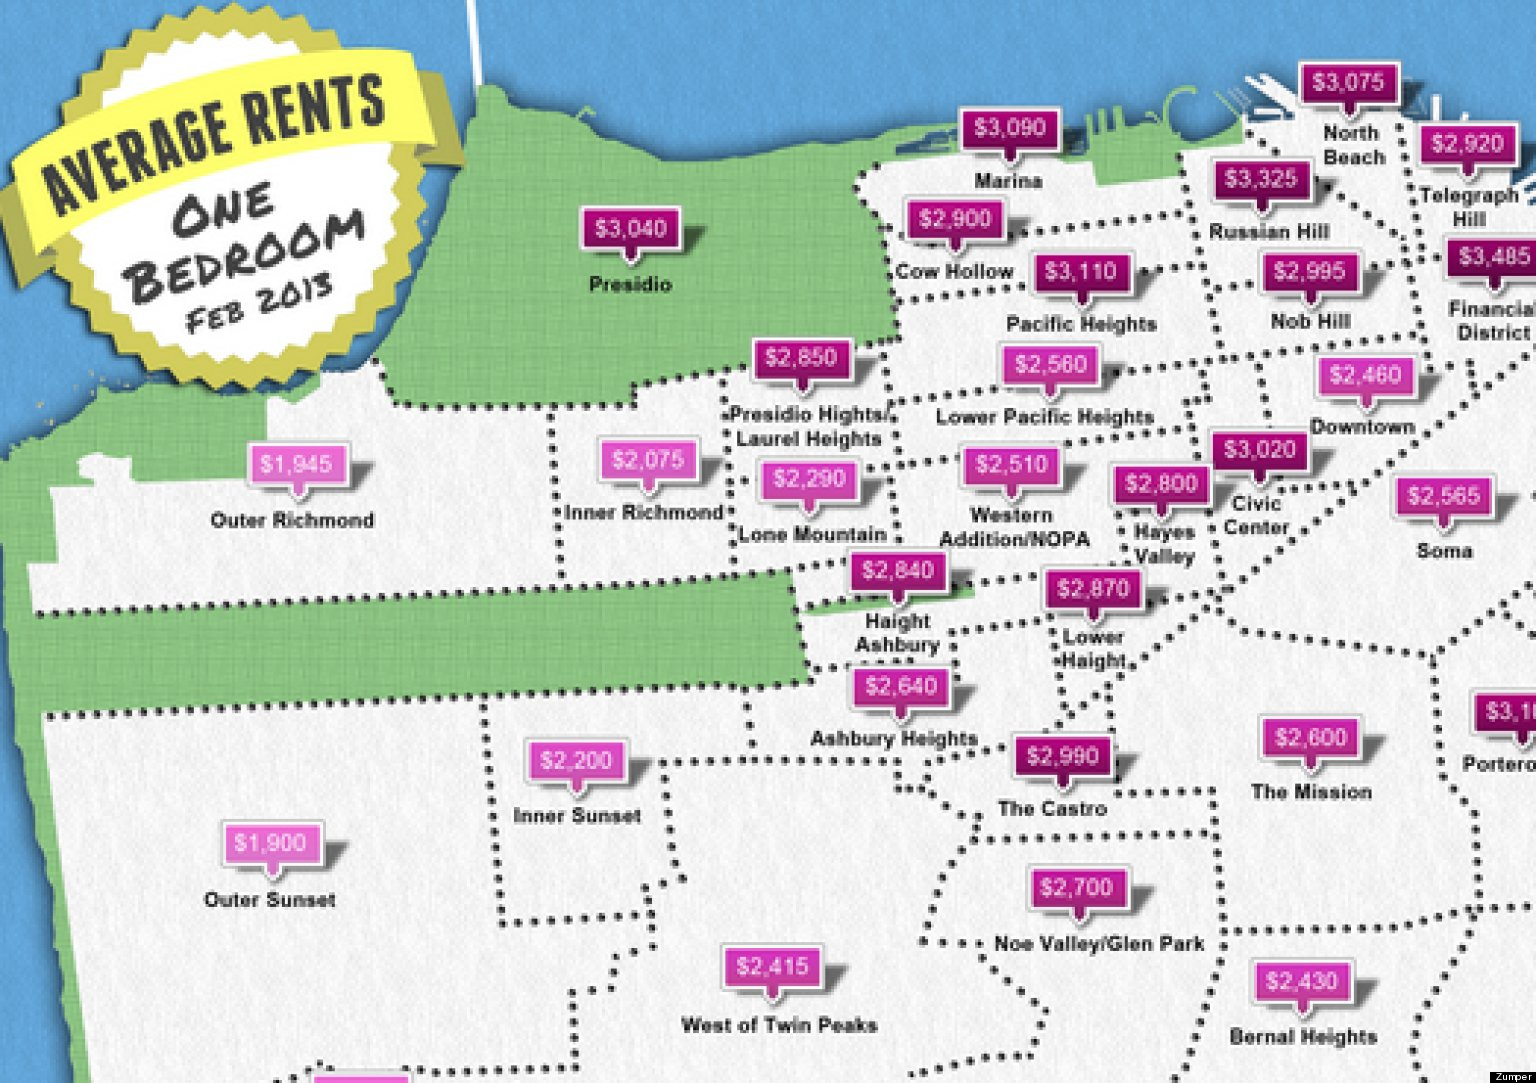 san francisco rental rates maps the average one bedrooms infographic huffpost. Black Bedroom Furniture Sets. Home Design Ideas